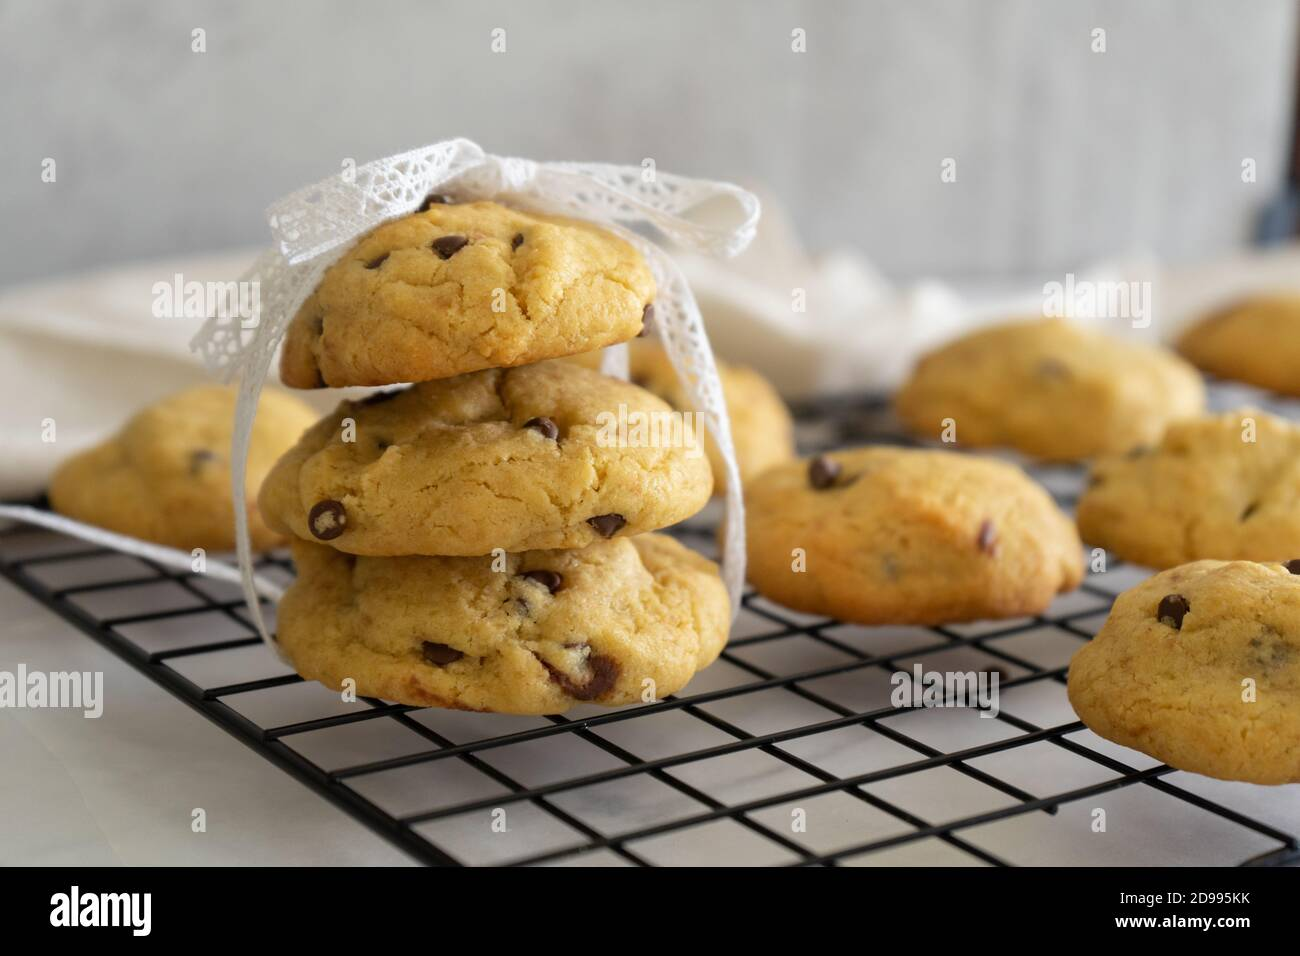 Homemade stack of chocolate chip cookies on white background. Baked goods. Stock Photo